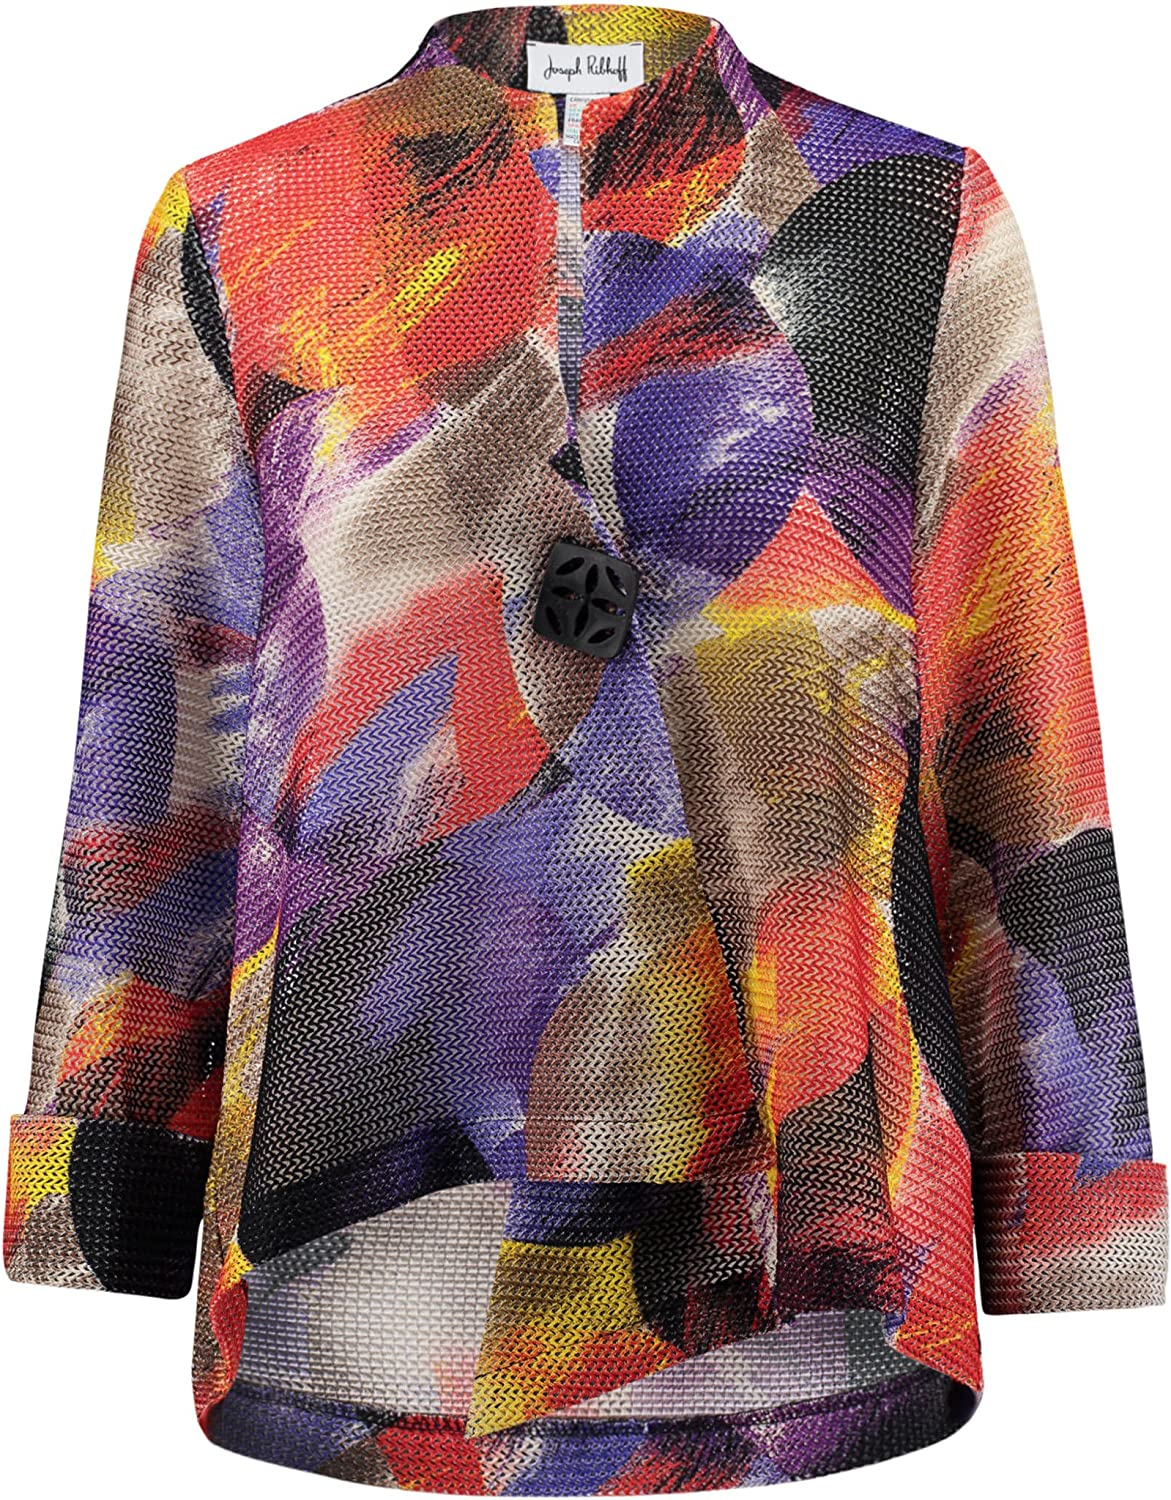 Joseph Ribkoff Multicoloured Knit Button Closure Coverup Jacket Style 171596